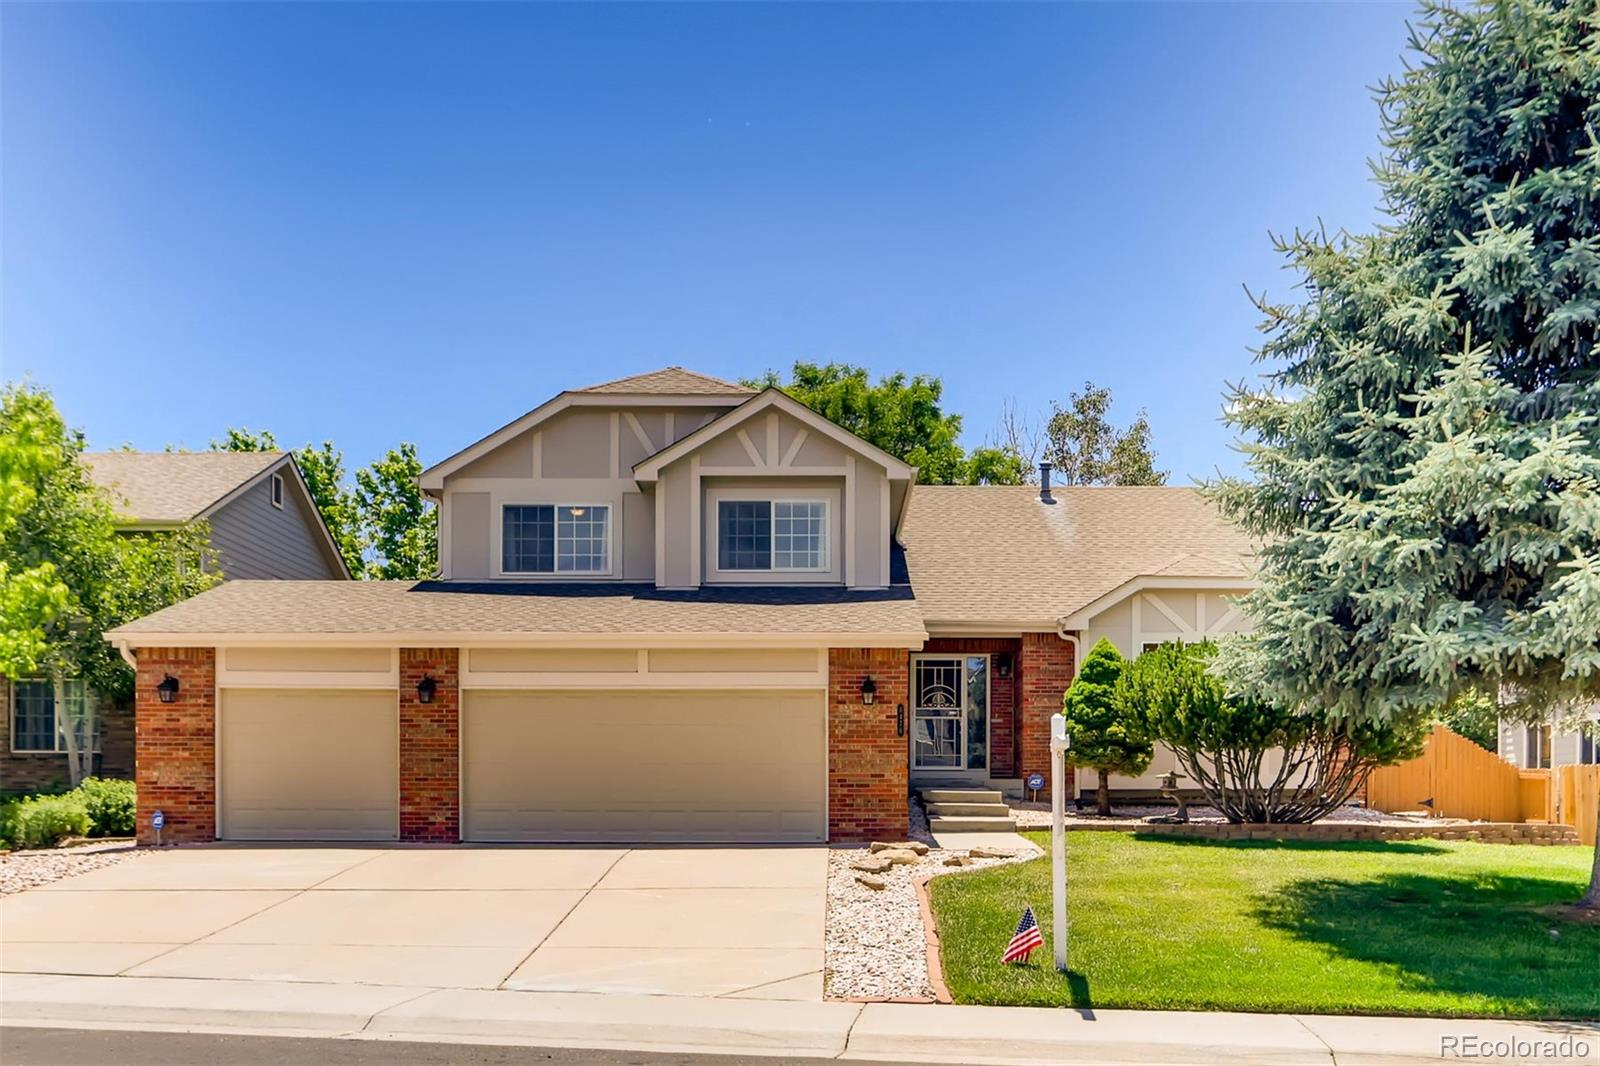 6476 W 98th Drive Property Photo - Westminster, CO real estate listing